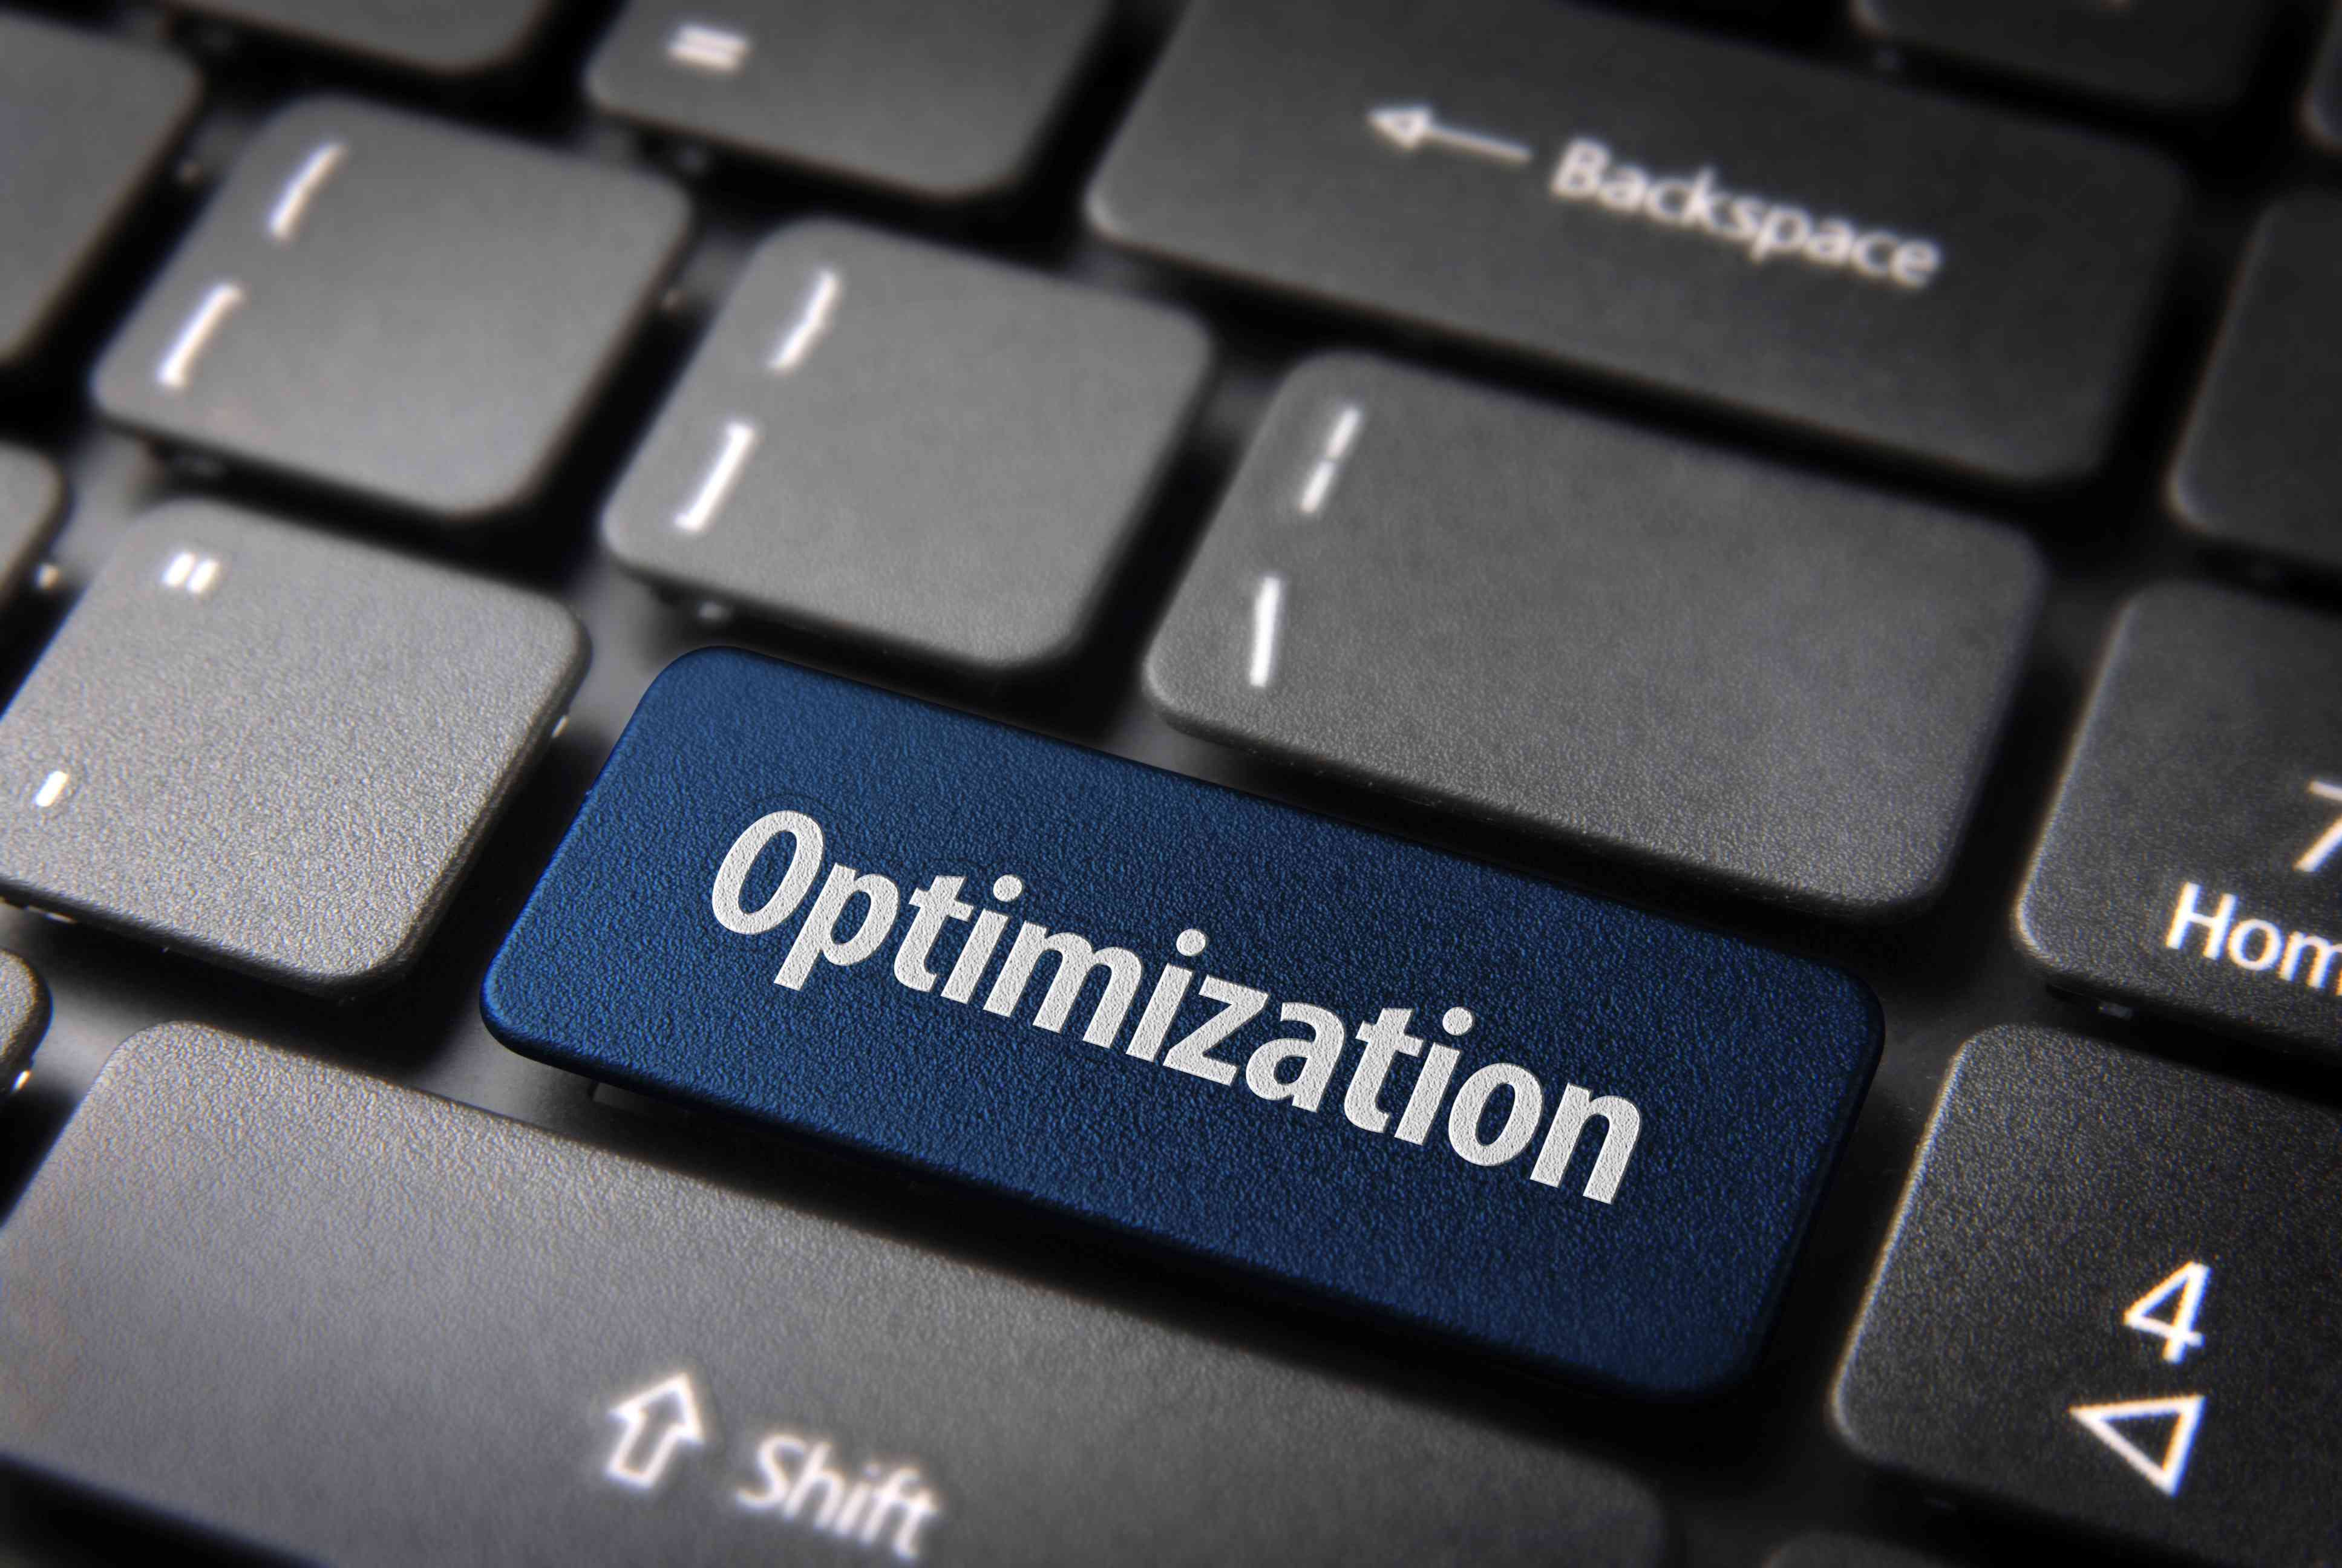 Aher Consulting Group - Optimization services